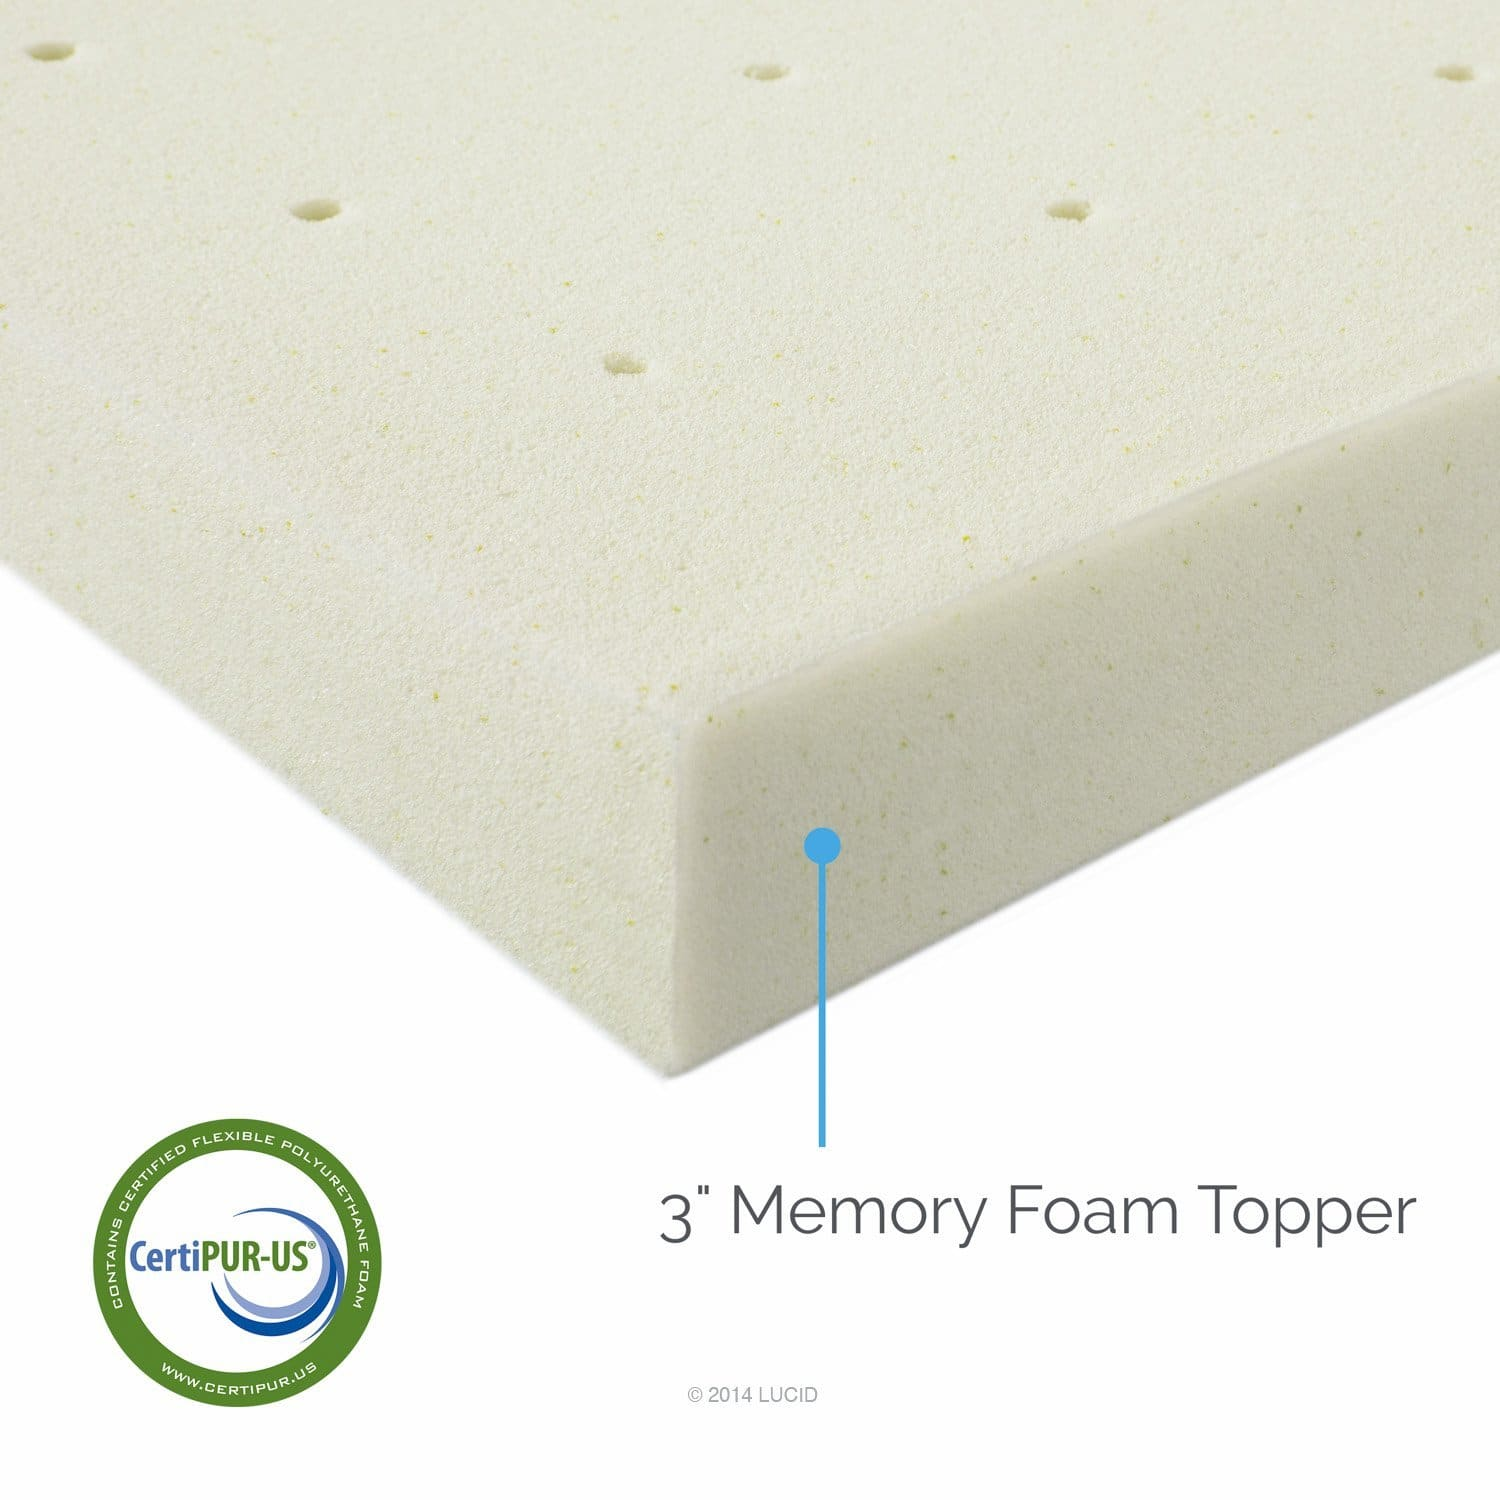 memory foam mattress topper - LUCID 3inch Ventilated Memory Foam Mattress Topper